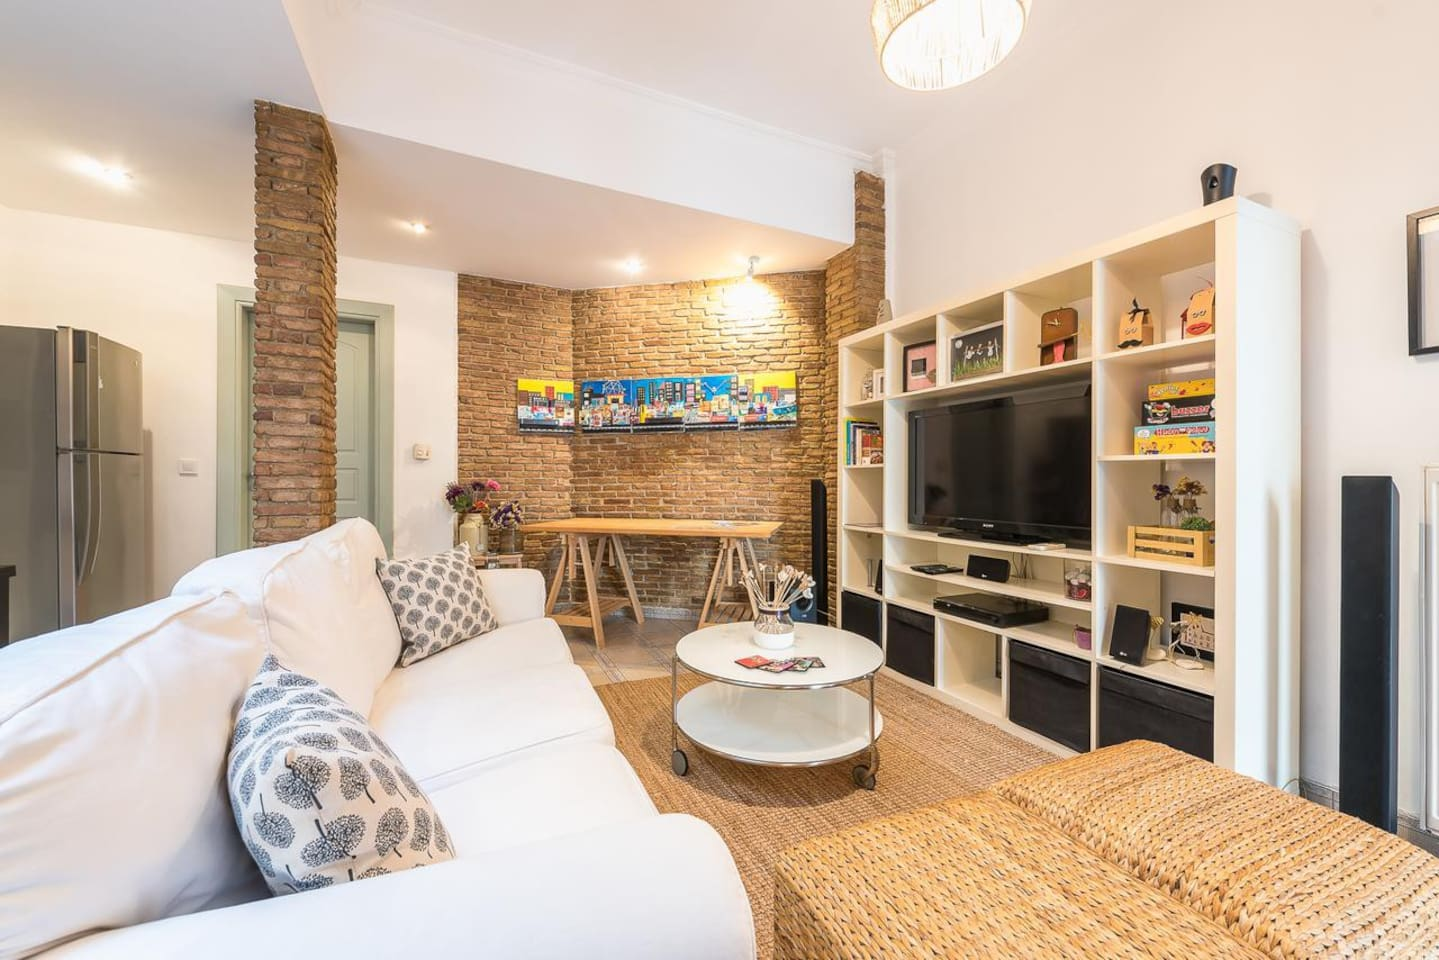 Live like a local in great comfort in our stylish apartment at the heart of Athens